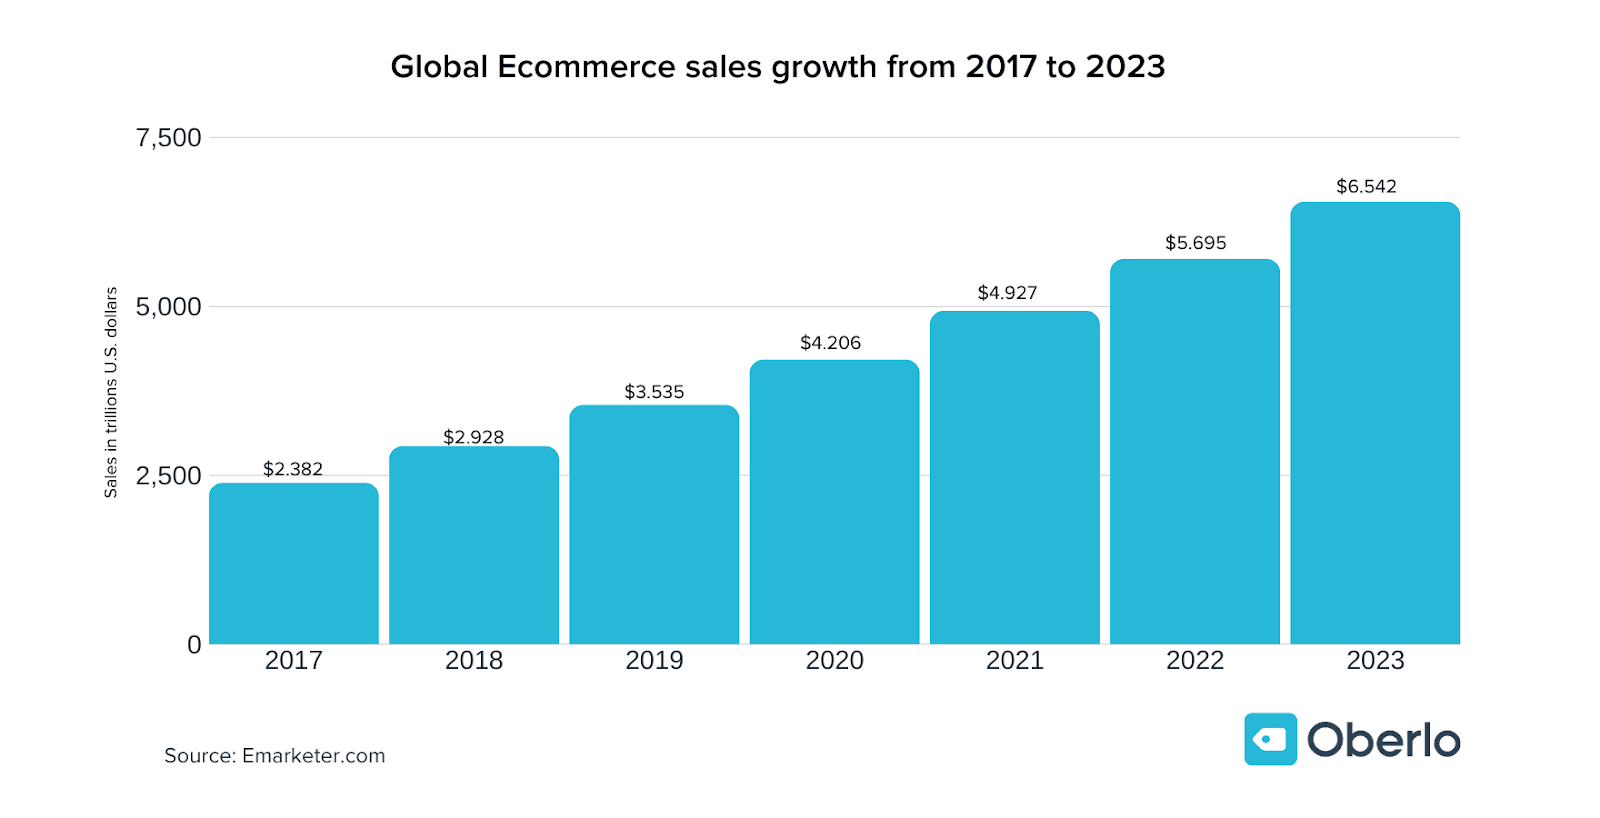 Annual retail e-commerce sales growth worldwide from 2017 to 2023